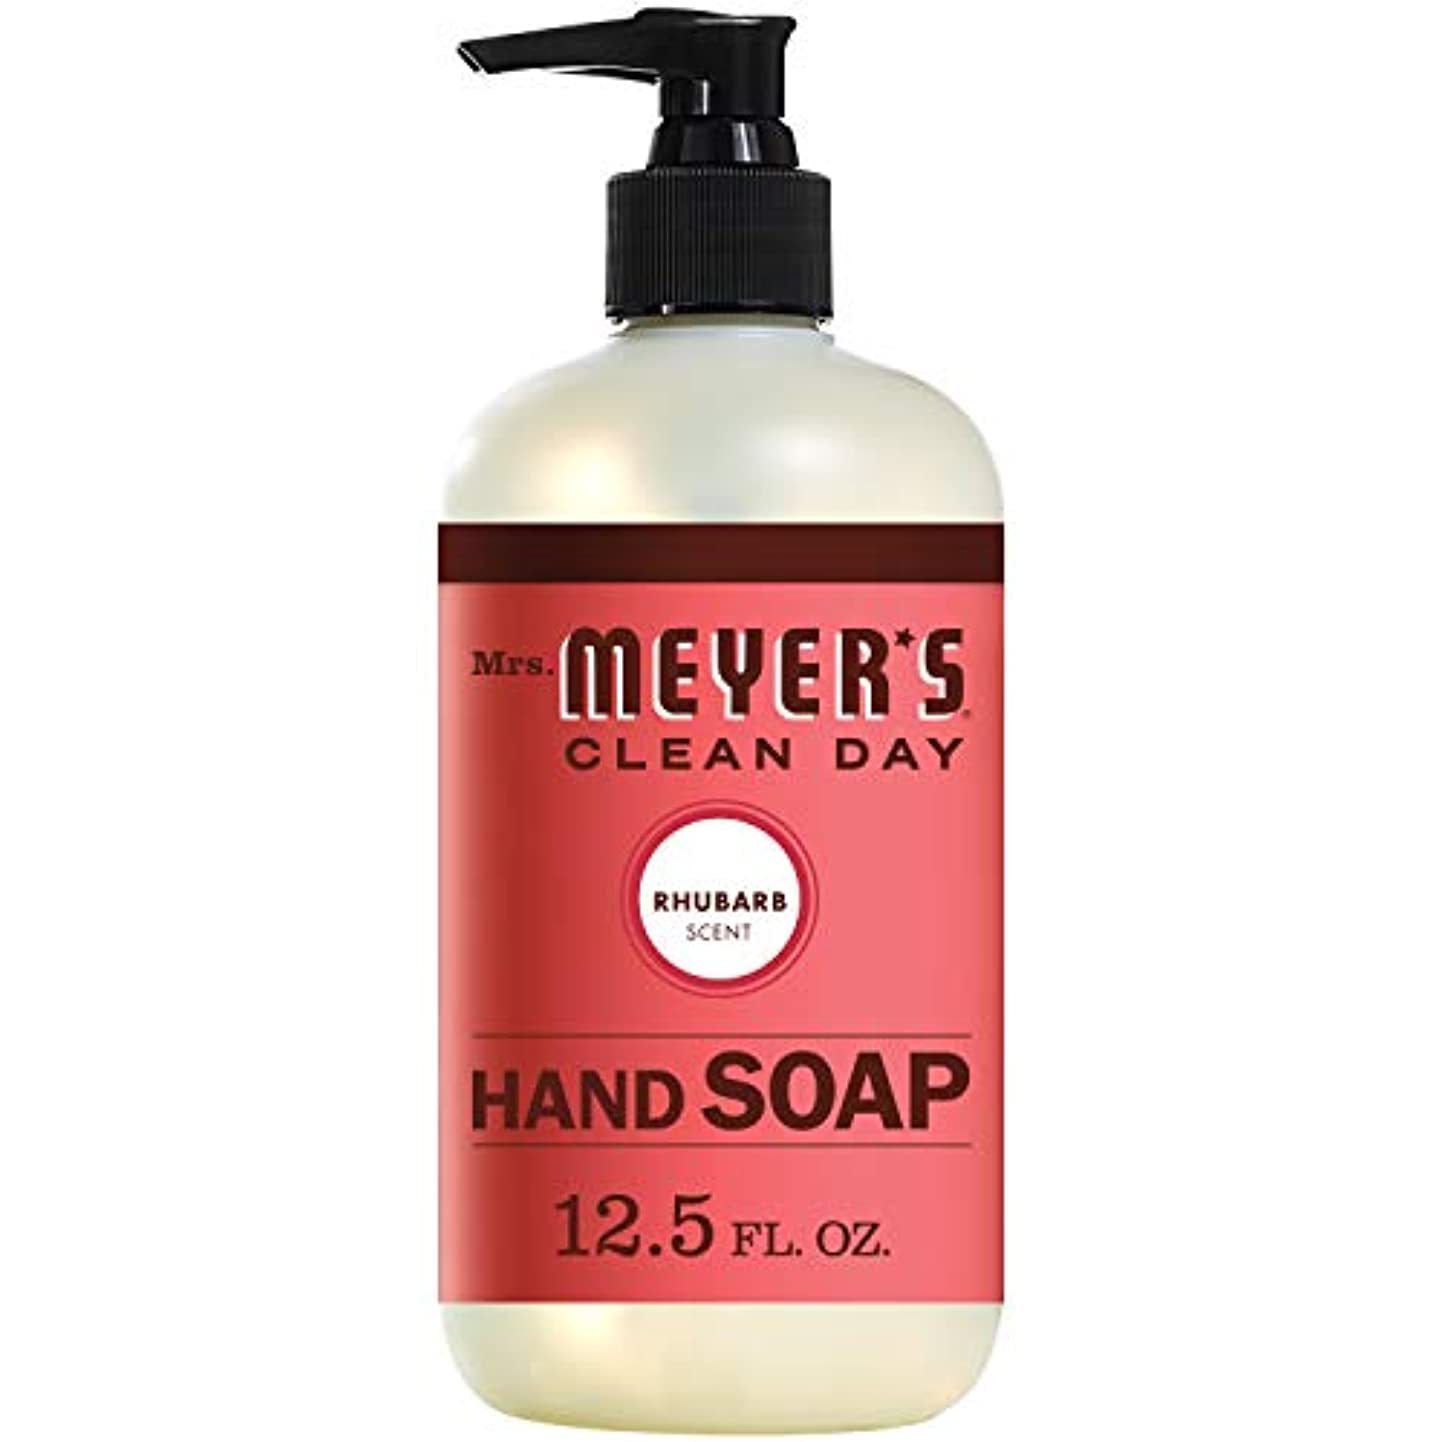 Mrs. Meyers Clean Day, Liquid Hand Soap, Rhubarb Scent, 12.5 fl oz (370 ml)